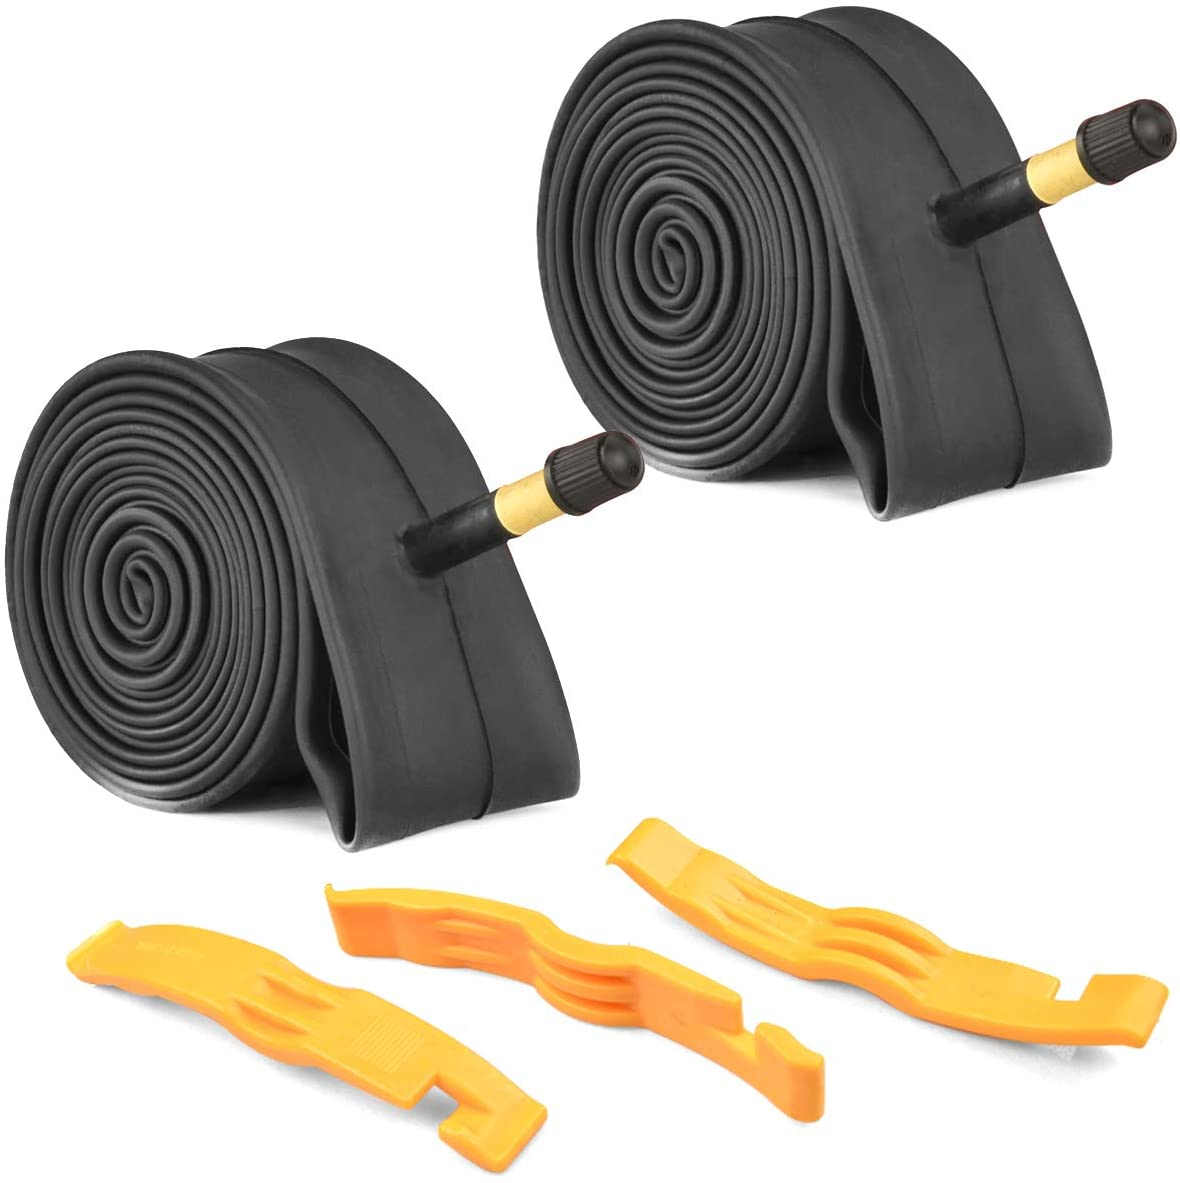 2 Pack Bike Tube with 3 Tire